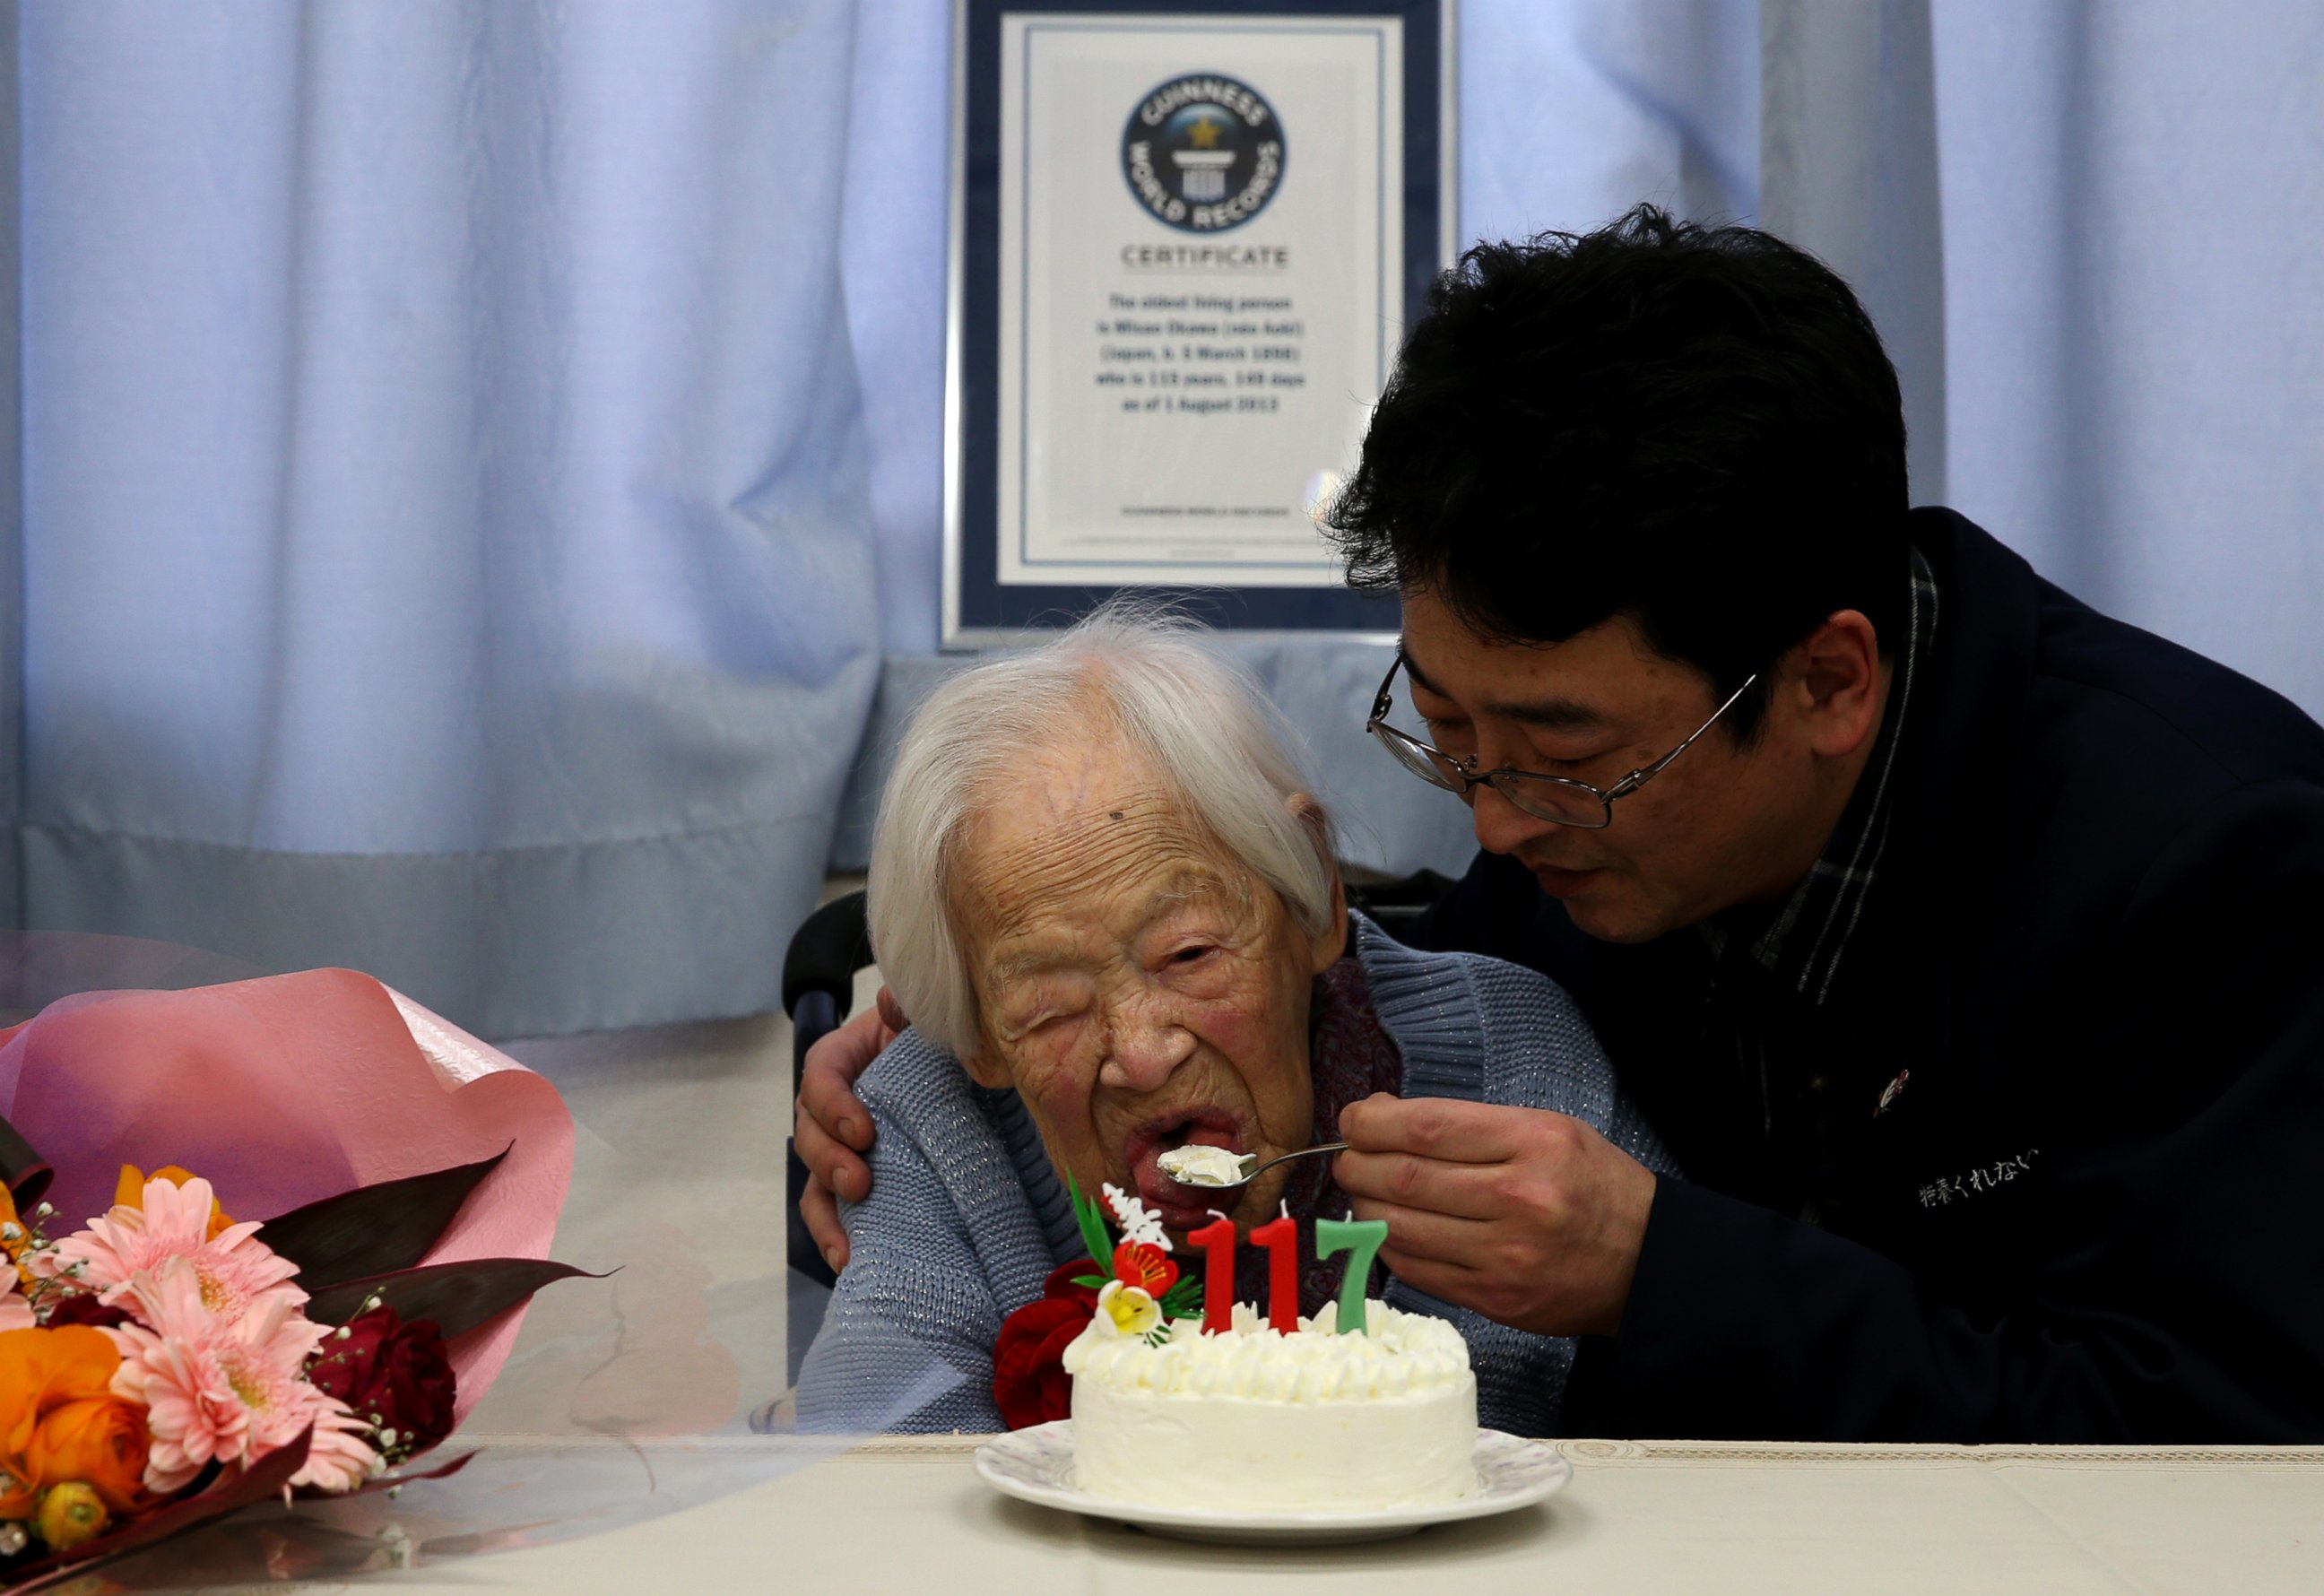 photo a nursing home employee helps misao okawa who is recognised by guinness world records as the worlds oldest living person eat her birthday cake on